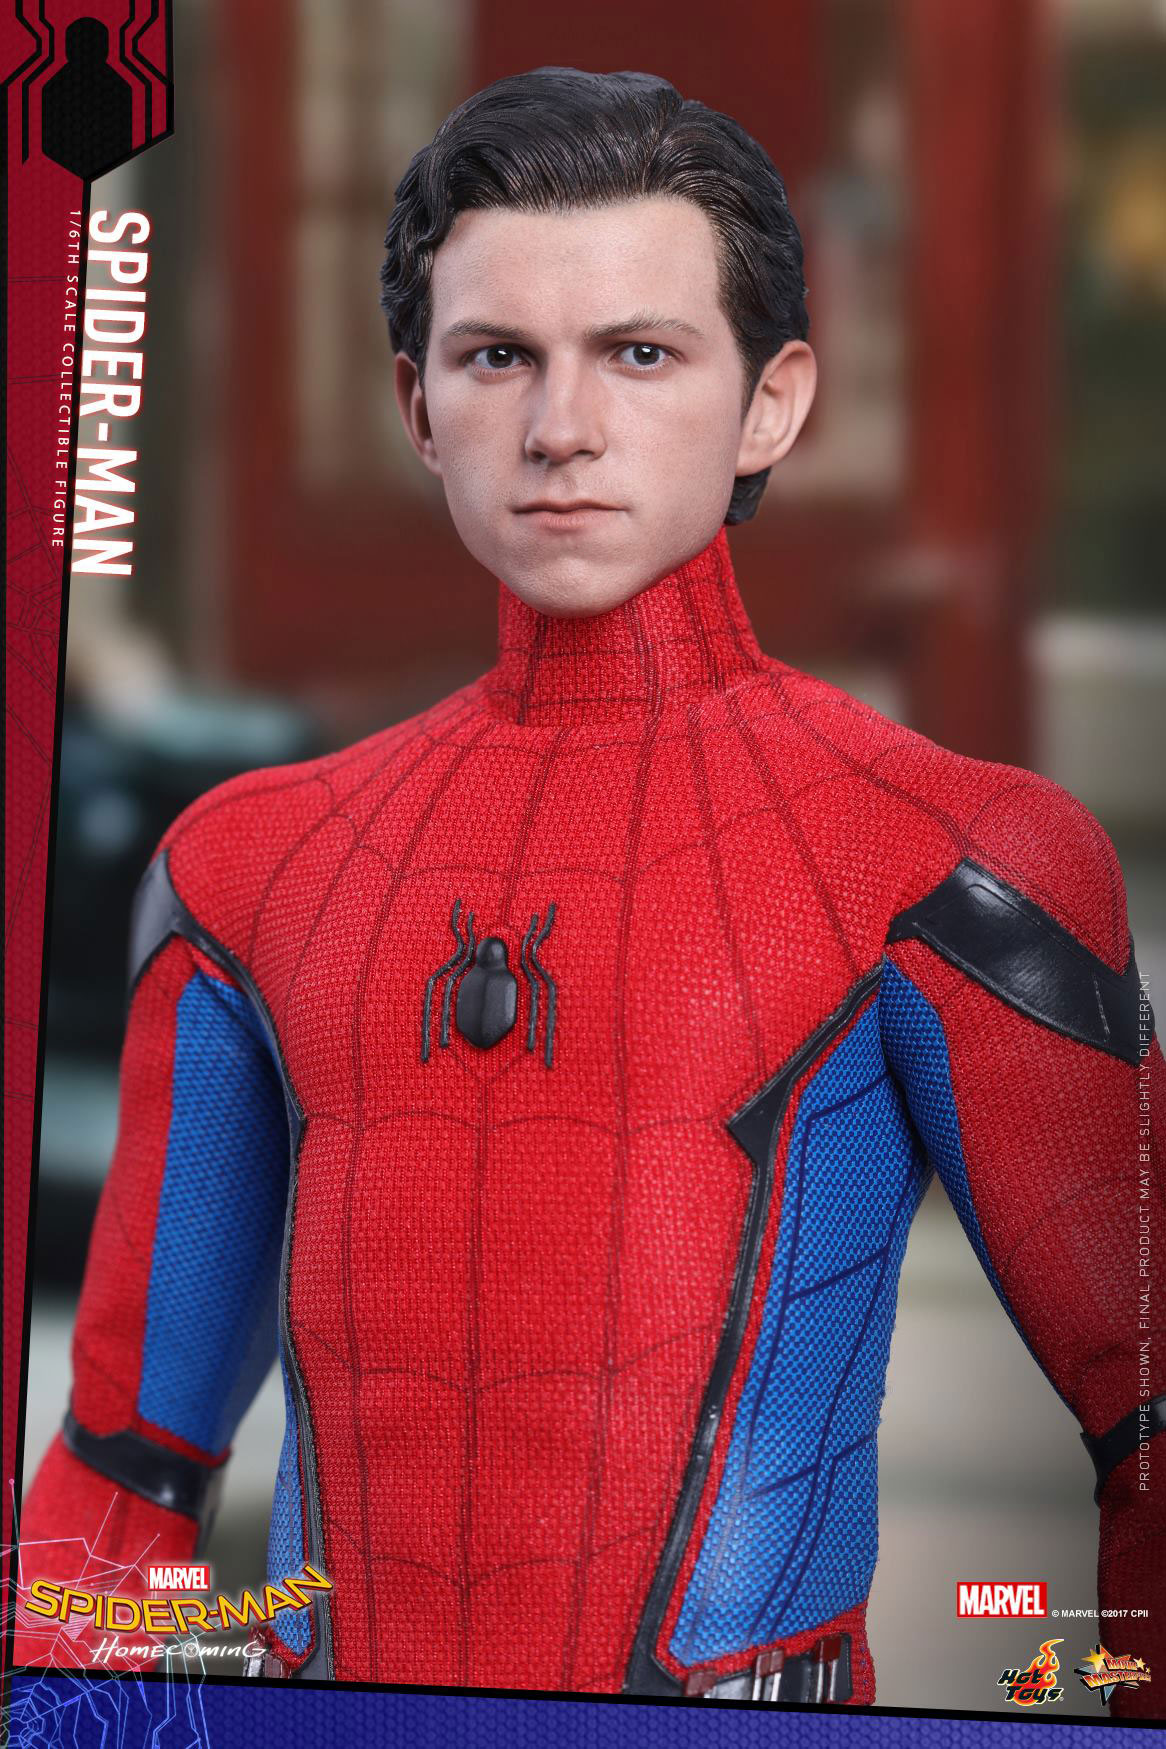 hot-toys-spider-man-homecoming-figure-unmasked-head-sculpt-2